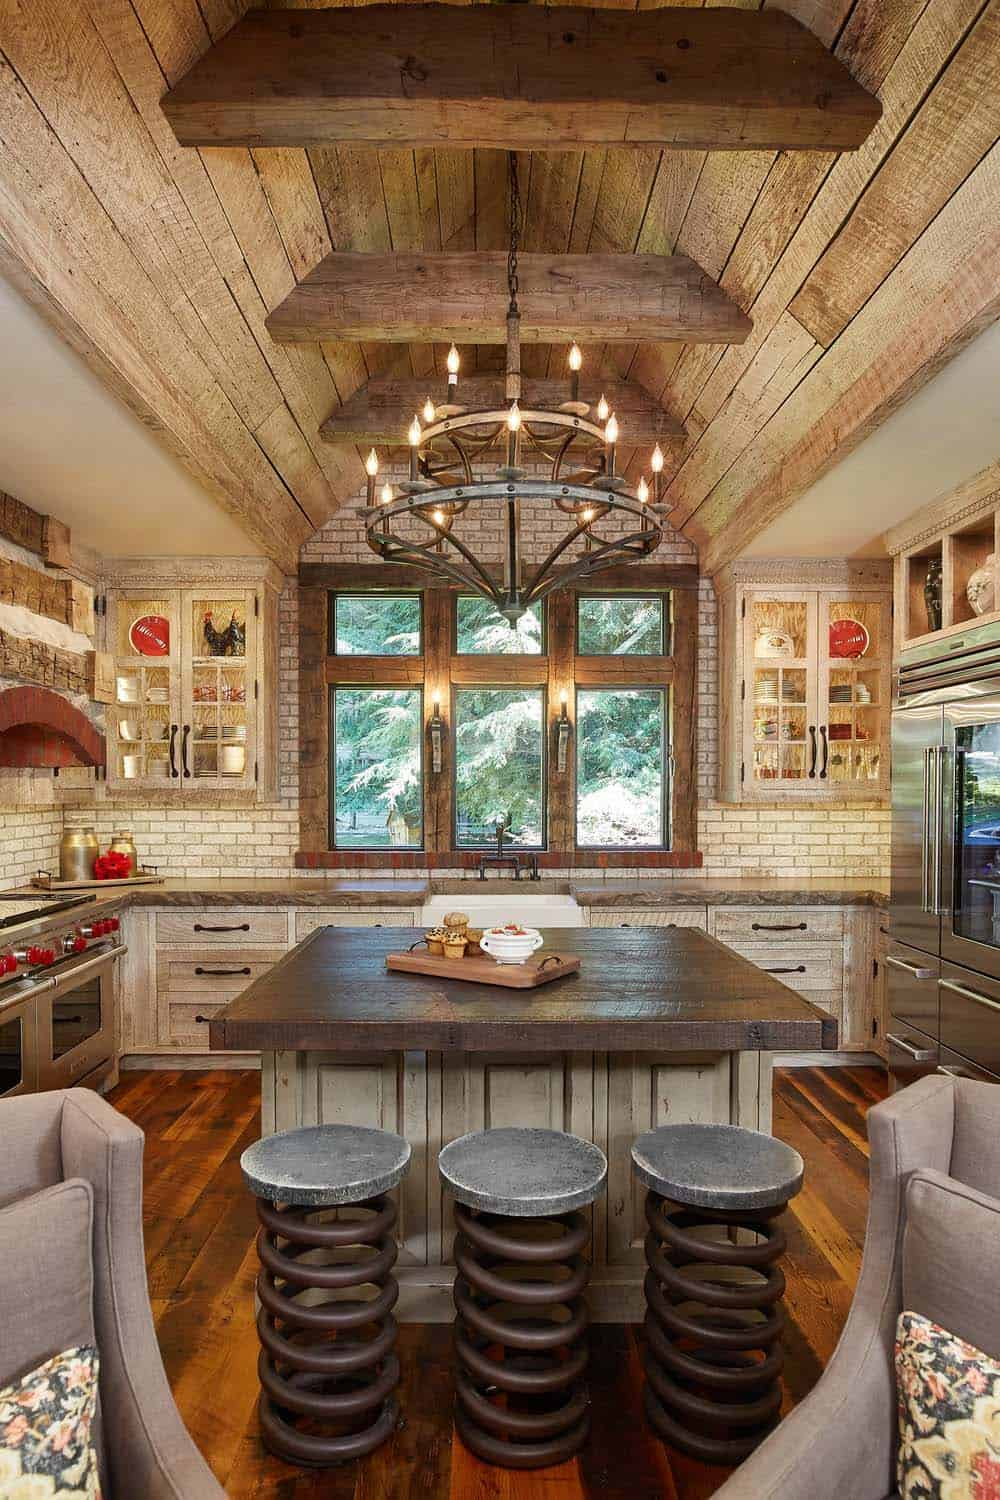 45 most pinteresting kitchens featured on 1 kindesign for 2016 for Home decor interior design